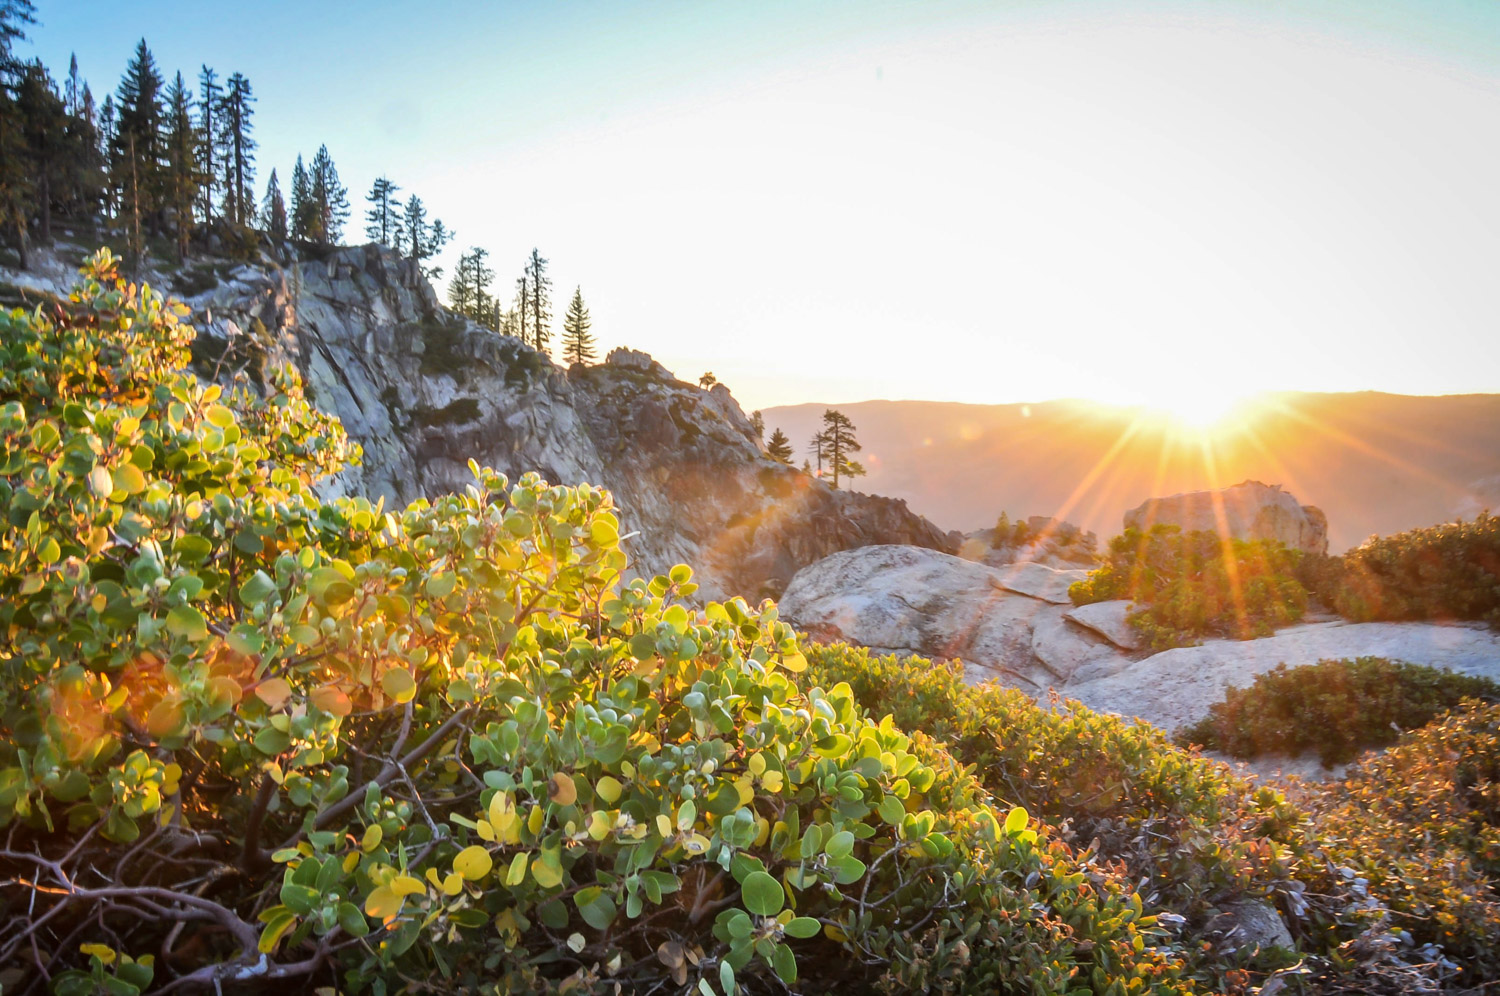 Road Trip Planner Backcountry Yosemite National Park